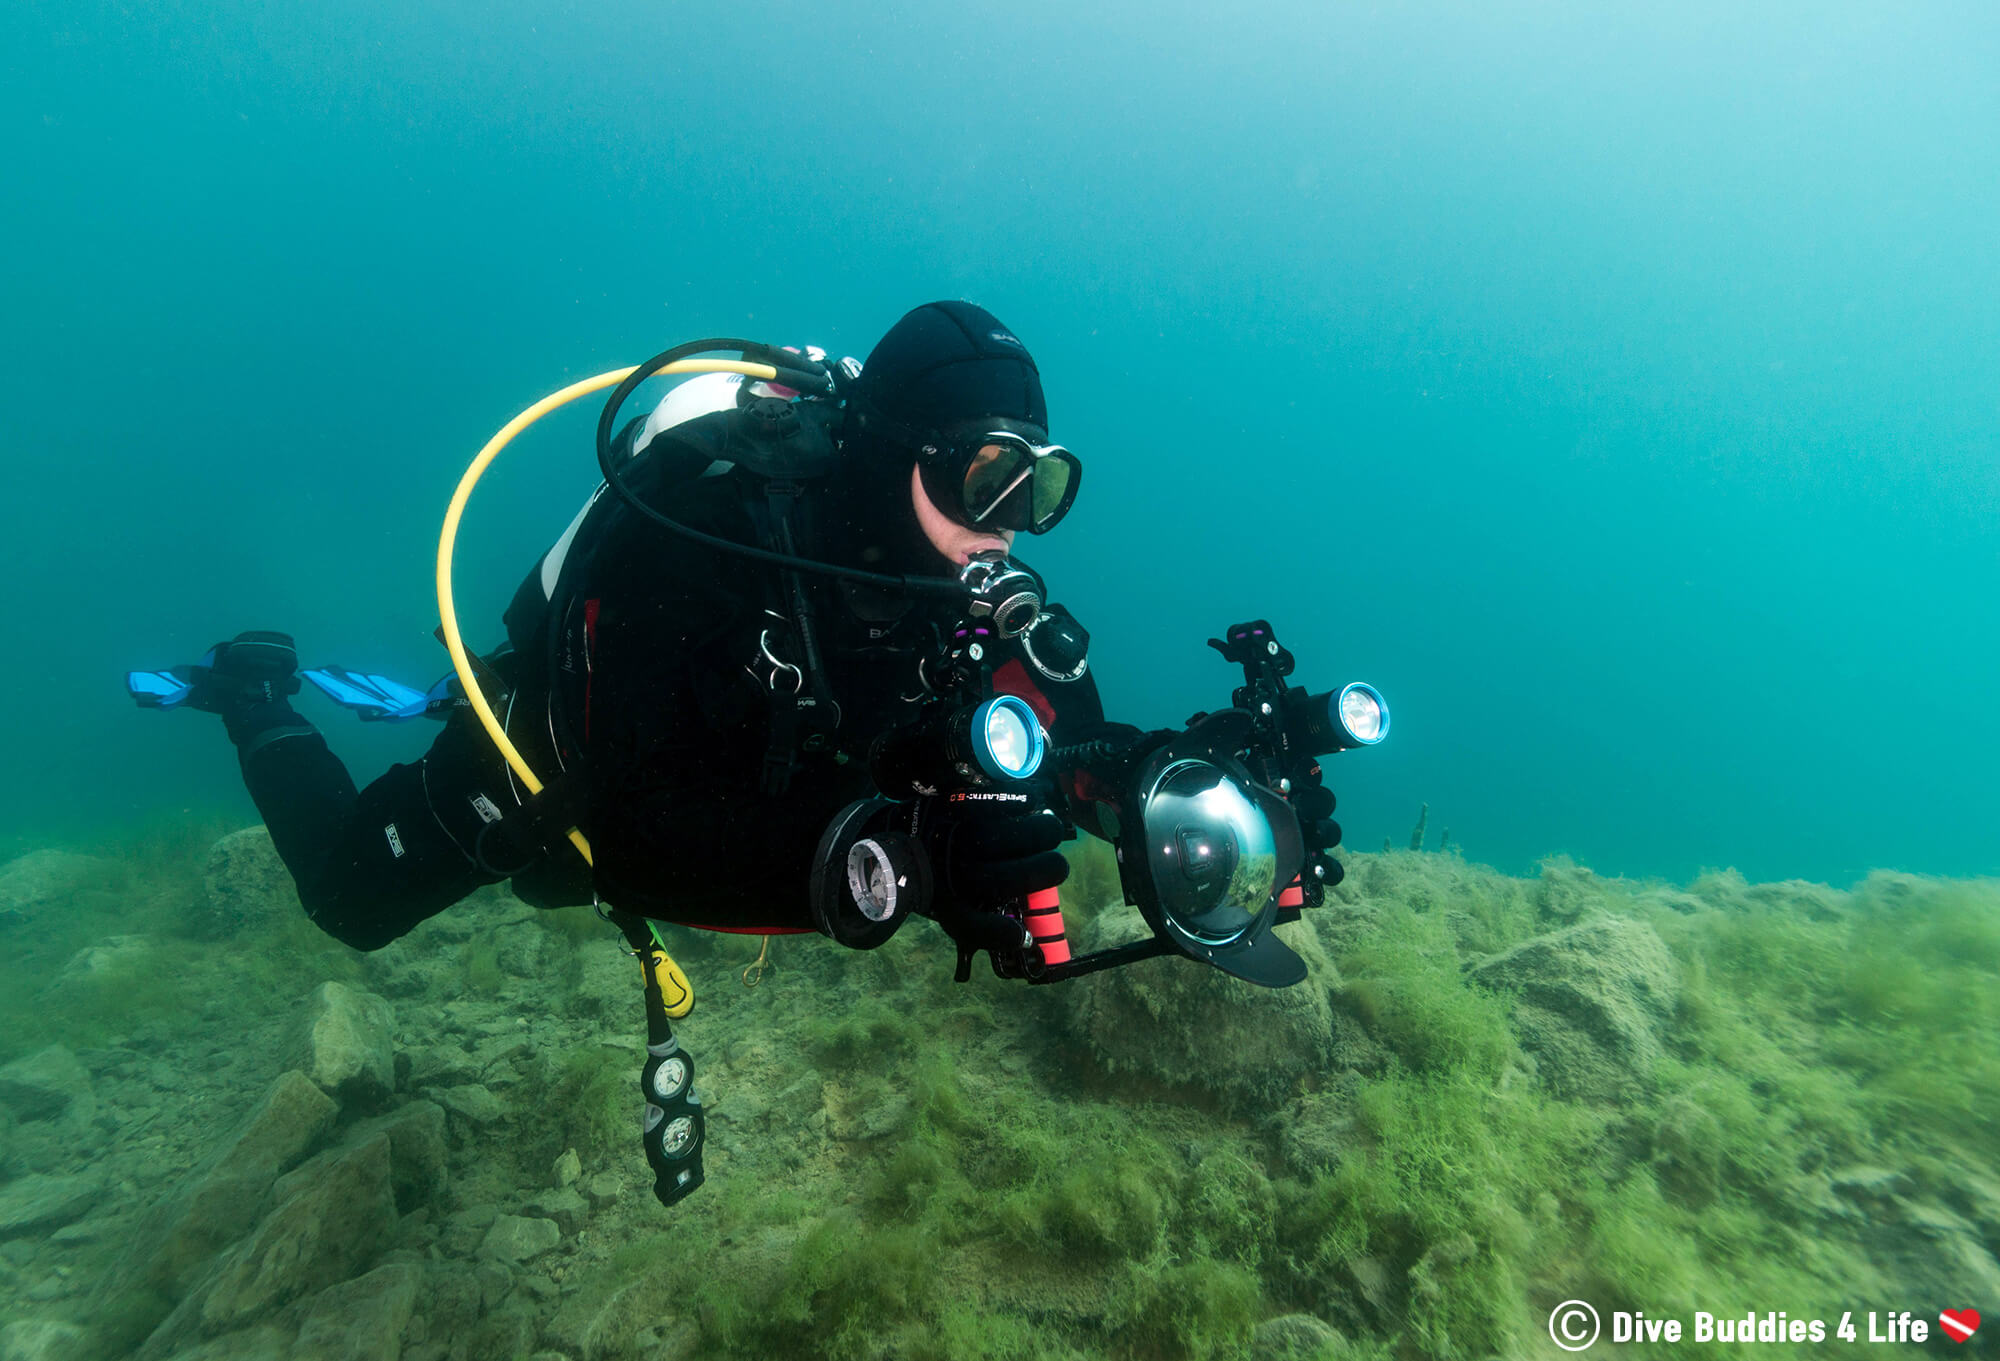 Joey Diving With His GoPro Dome Port Lens In The Chepstow Quarry, Wales, UK